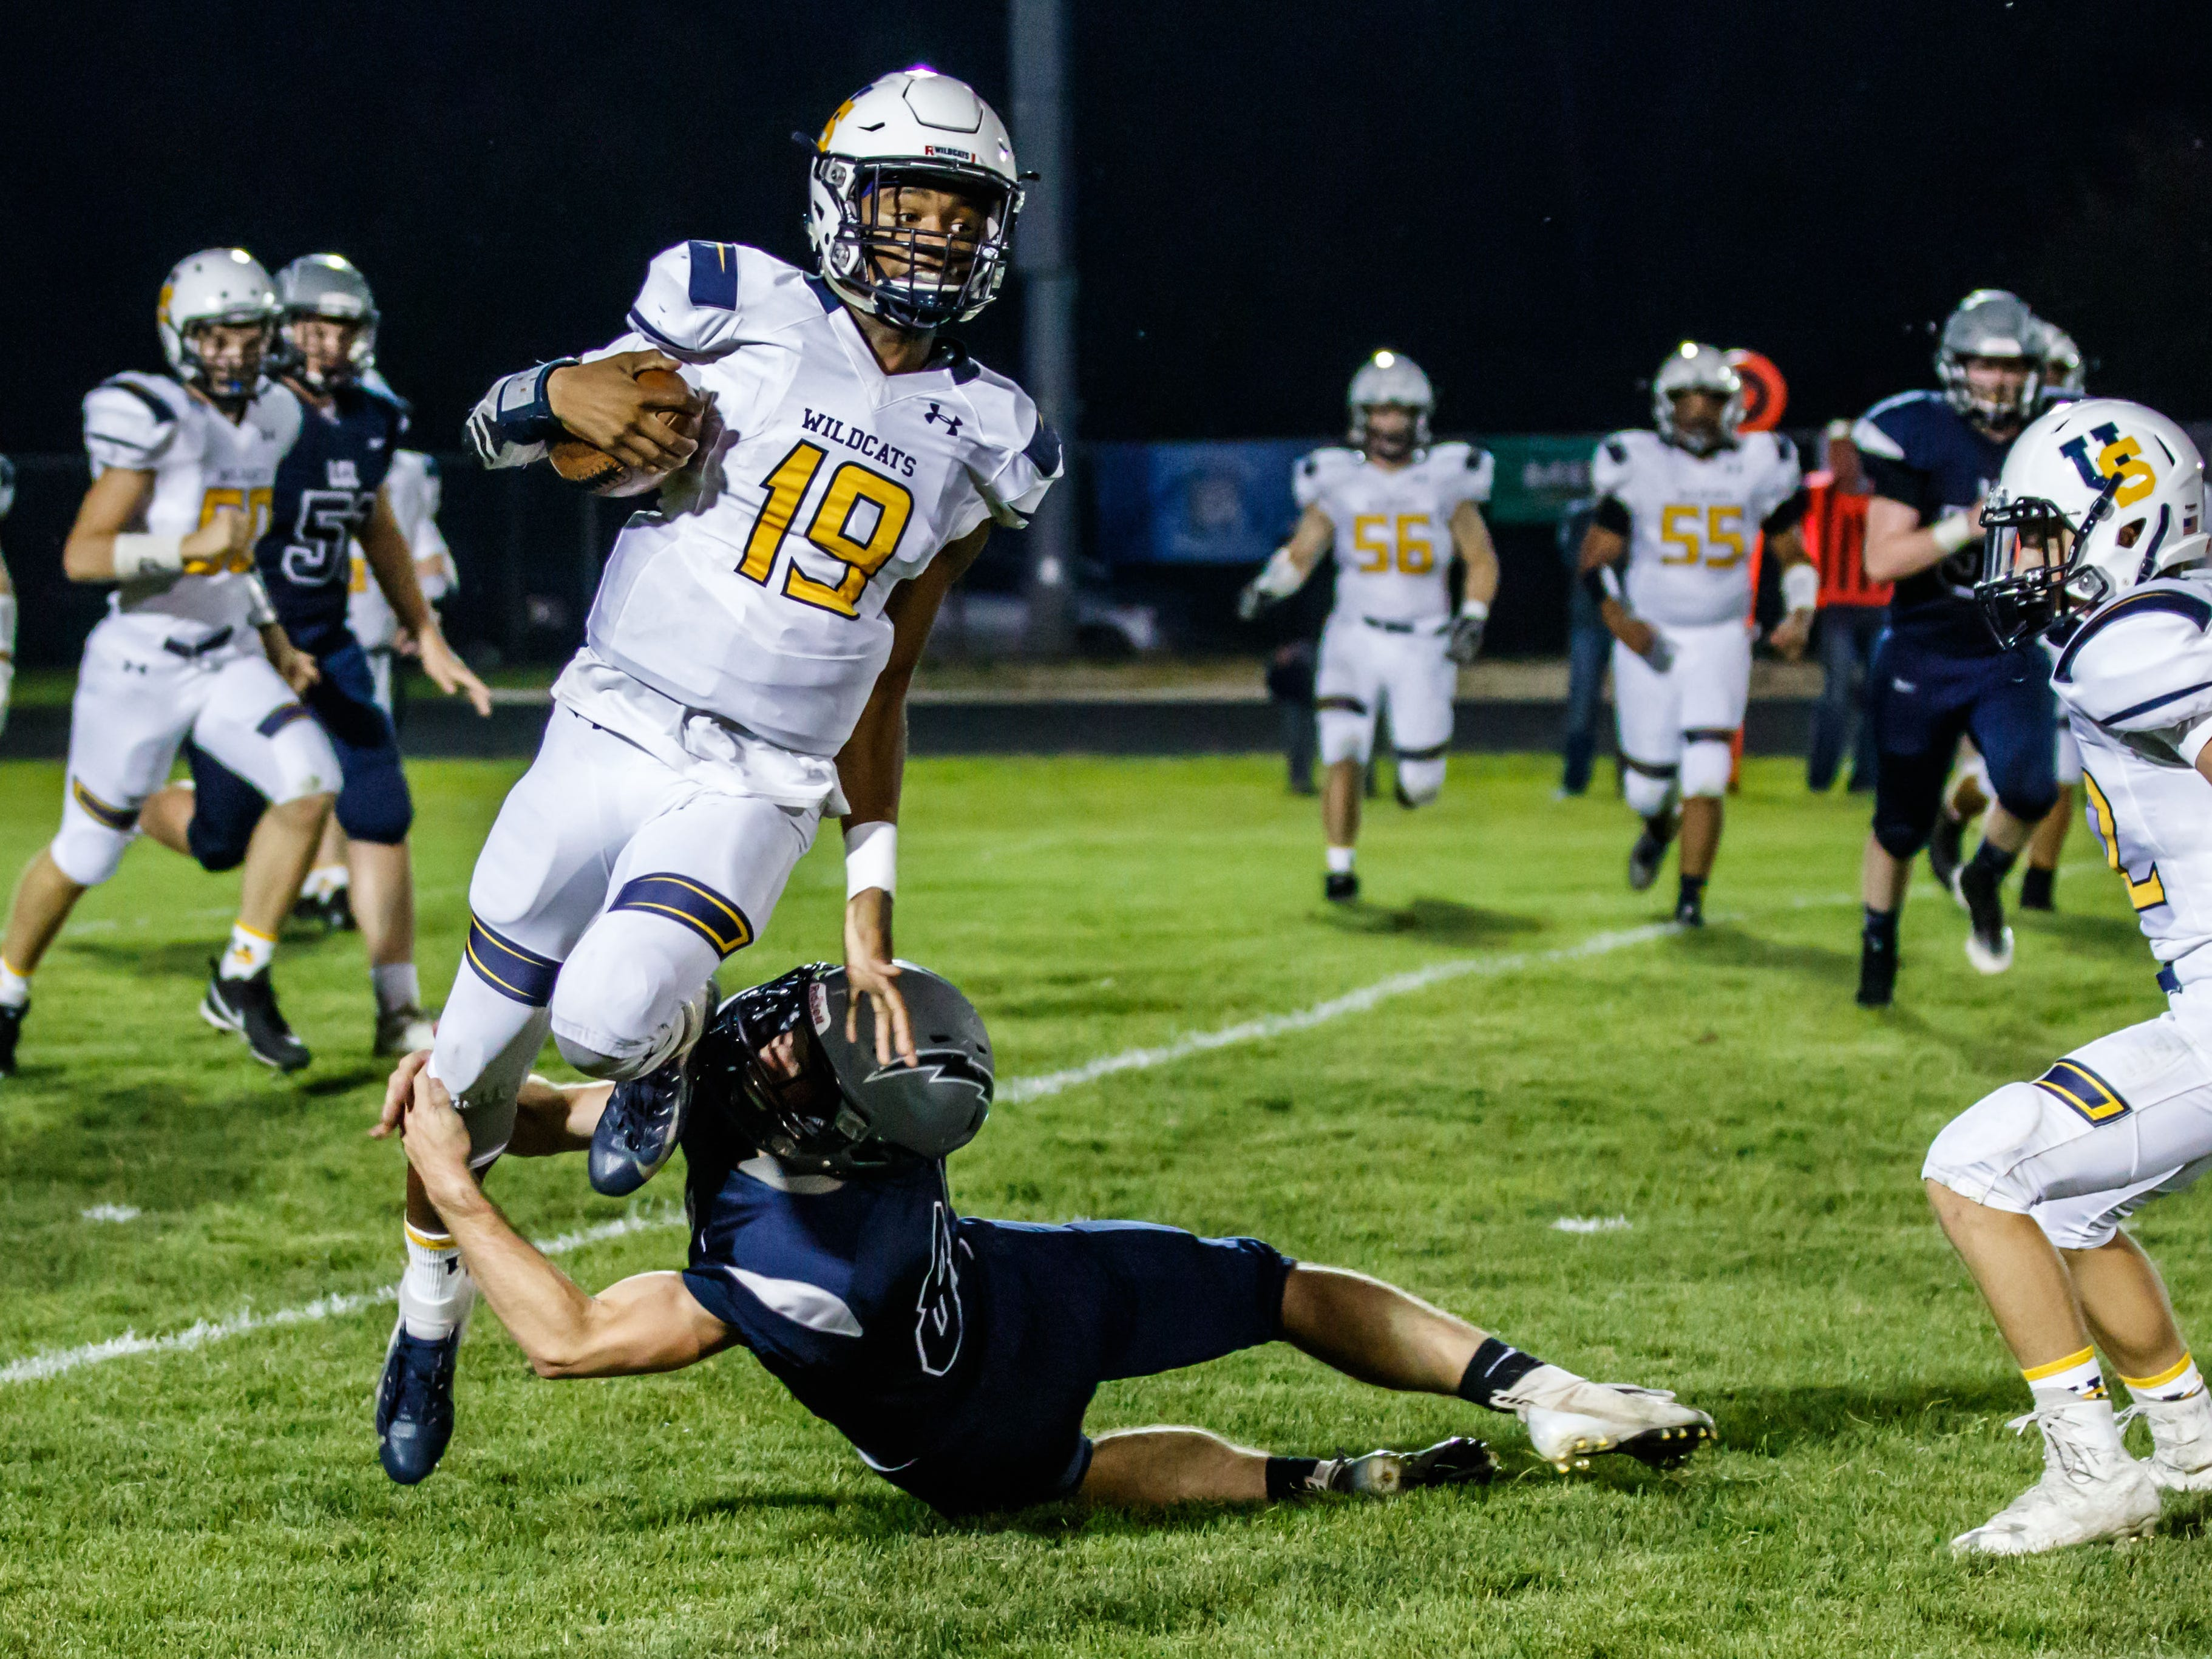 University School quarterback CJ Boyd (19) slips a tackle by Lake Country Lutheran's Jonathan Buschke (84) during the game at Lake Country Lutheran on Thursday, Sept. 13, 2018.